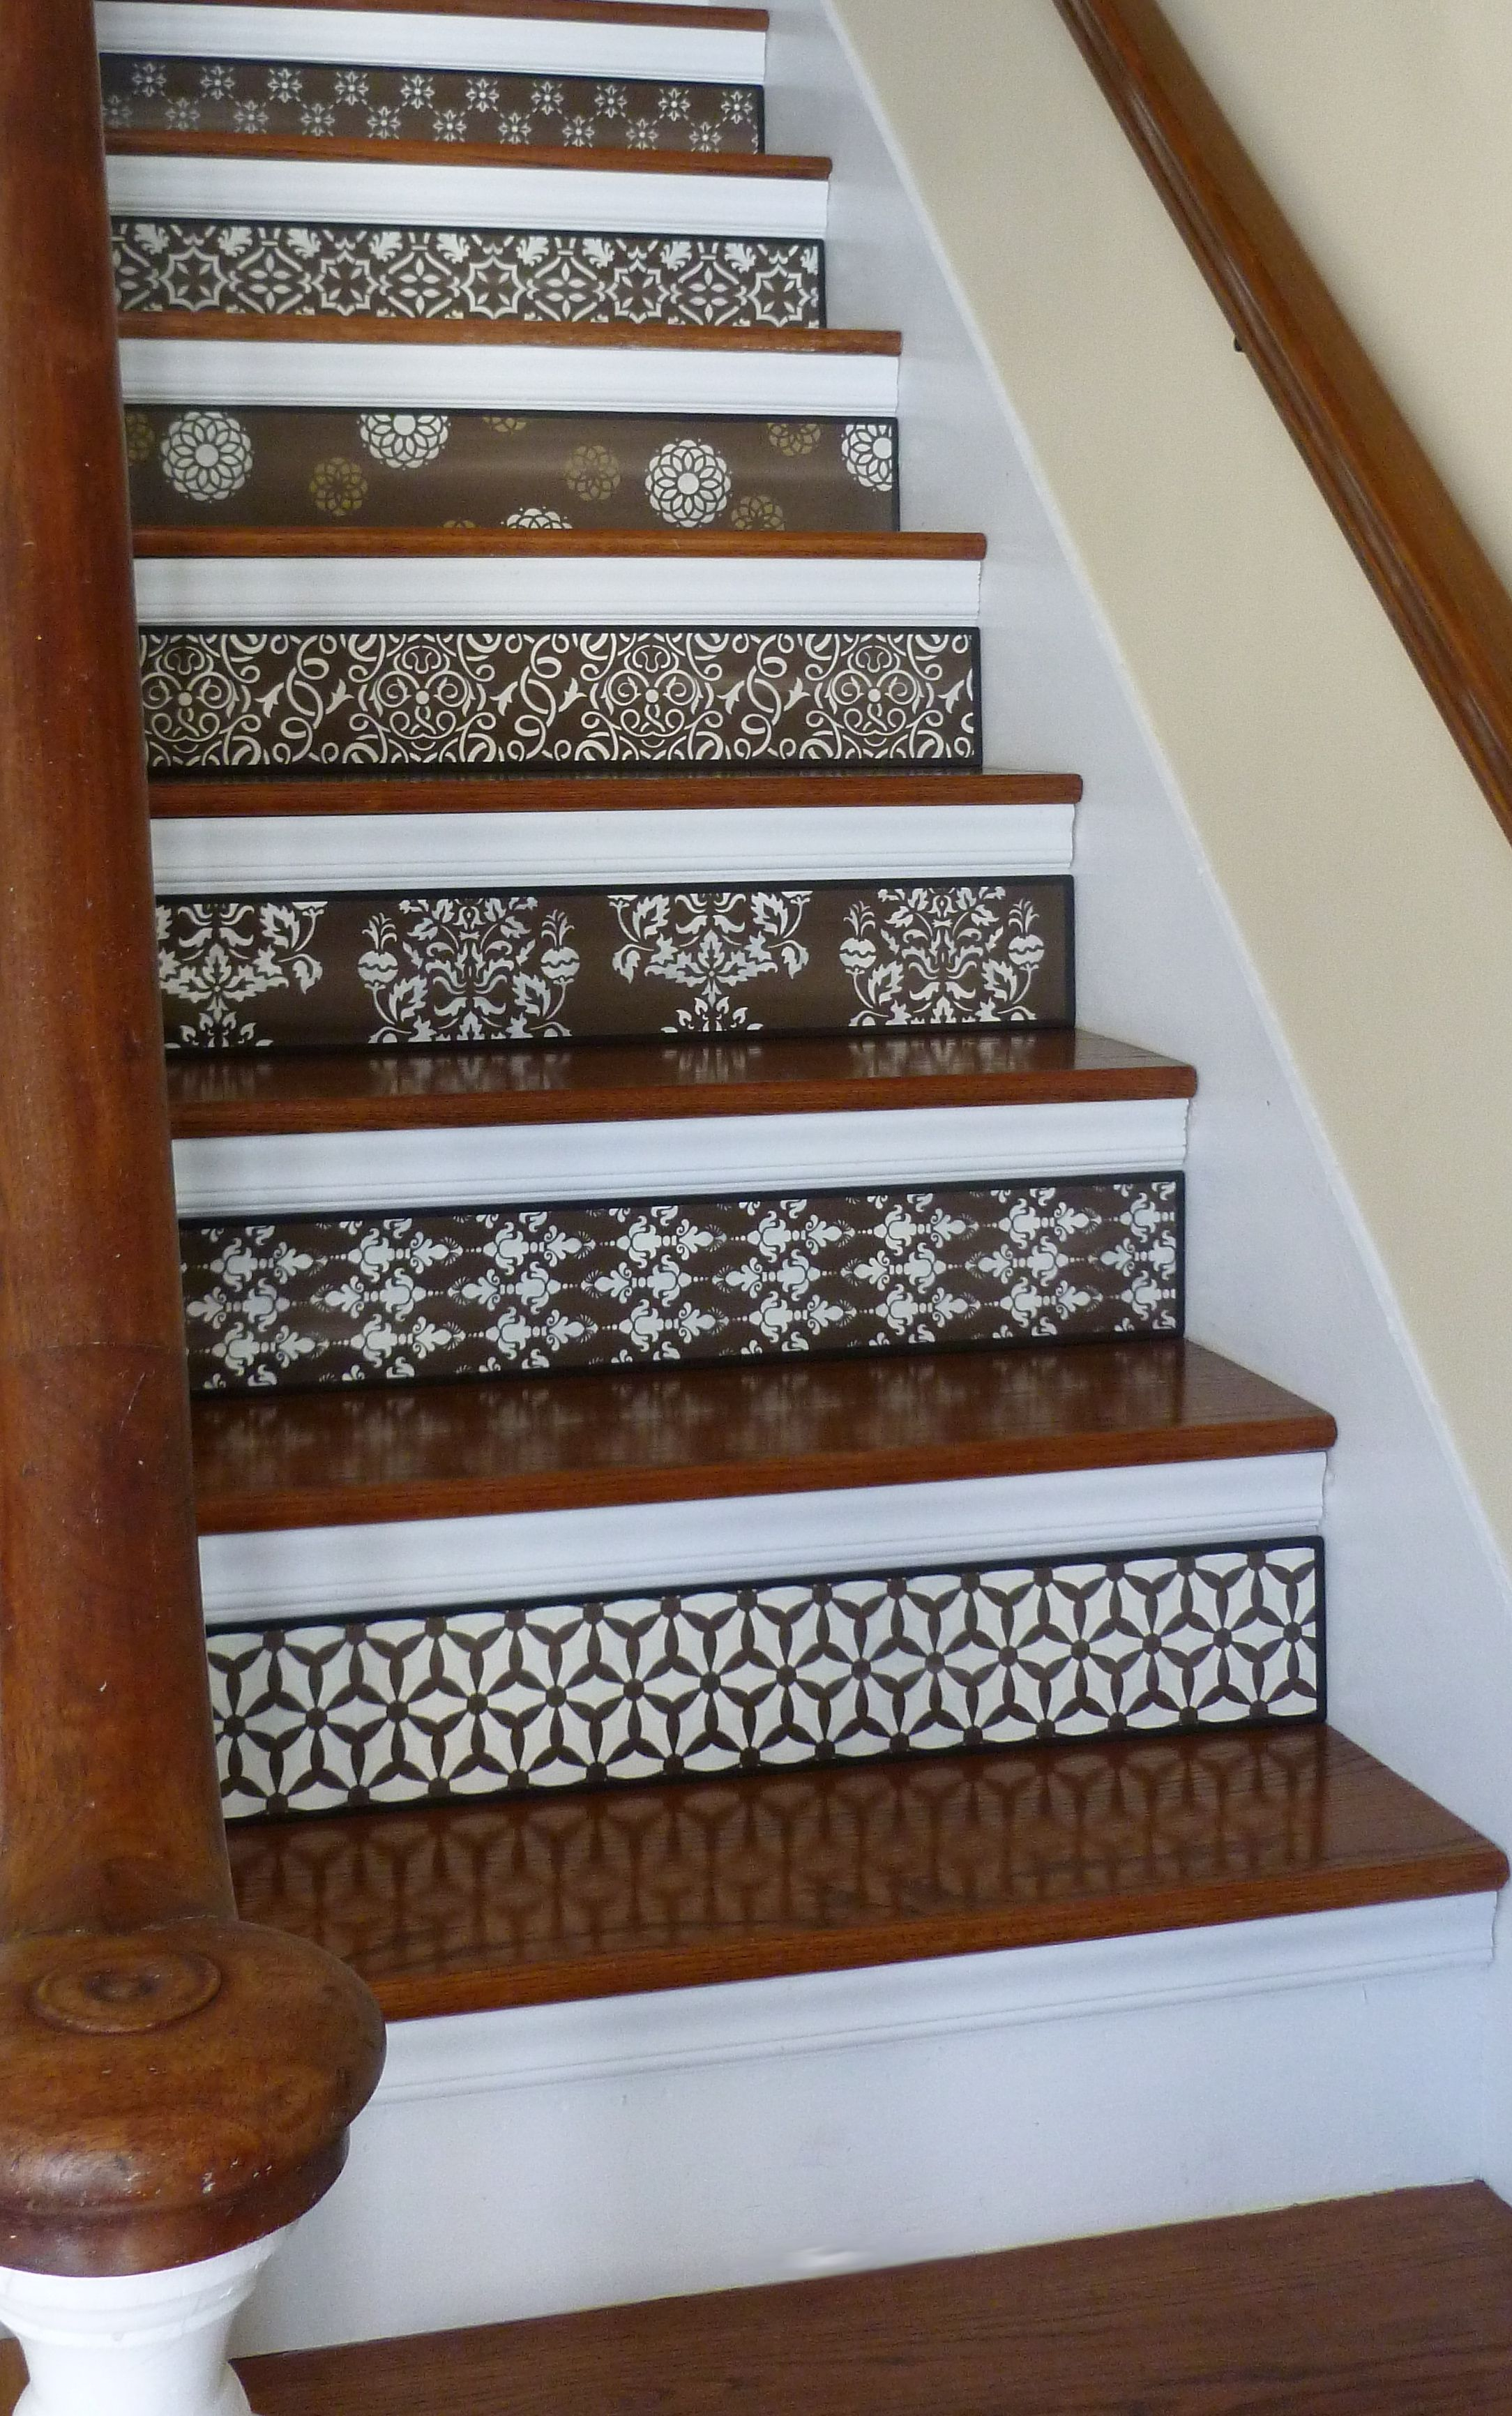 Stair Design Ideas Staircase Design Ideas Visit Www Tributedesigns Etsy Com Today To View The Beautiful Browns C Stair Decor Stairs Design Painted Stairs